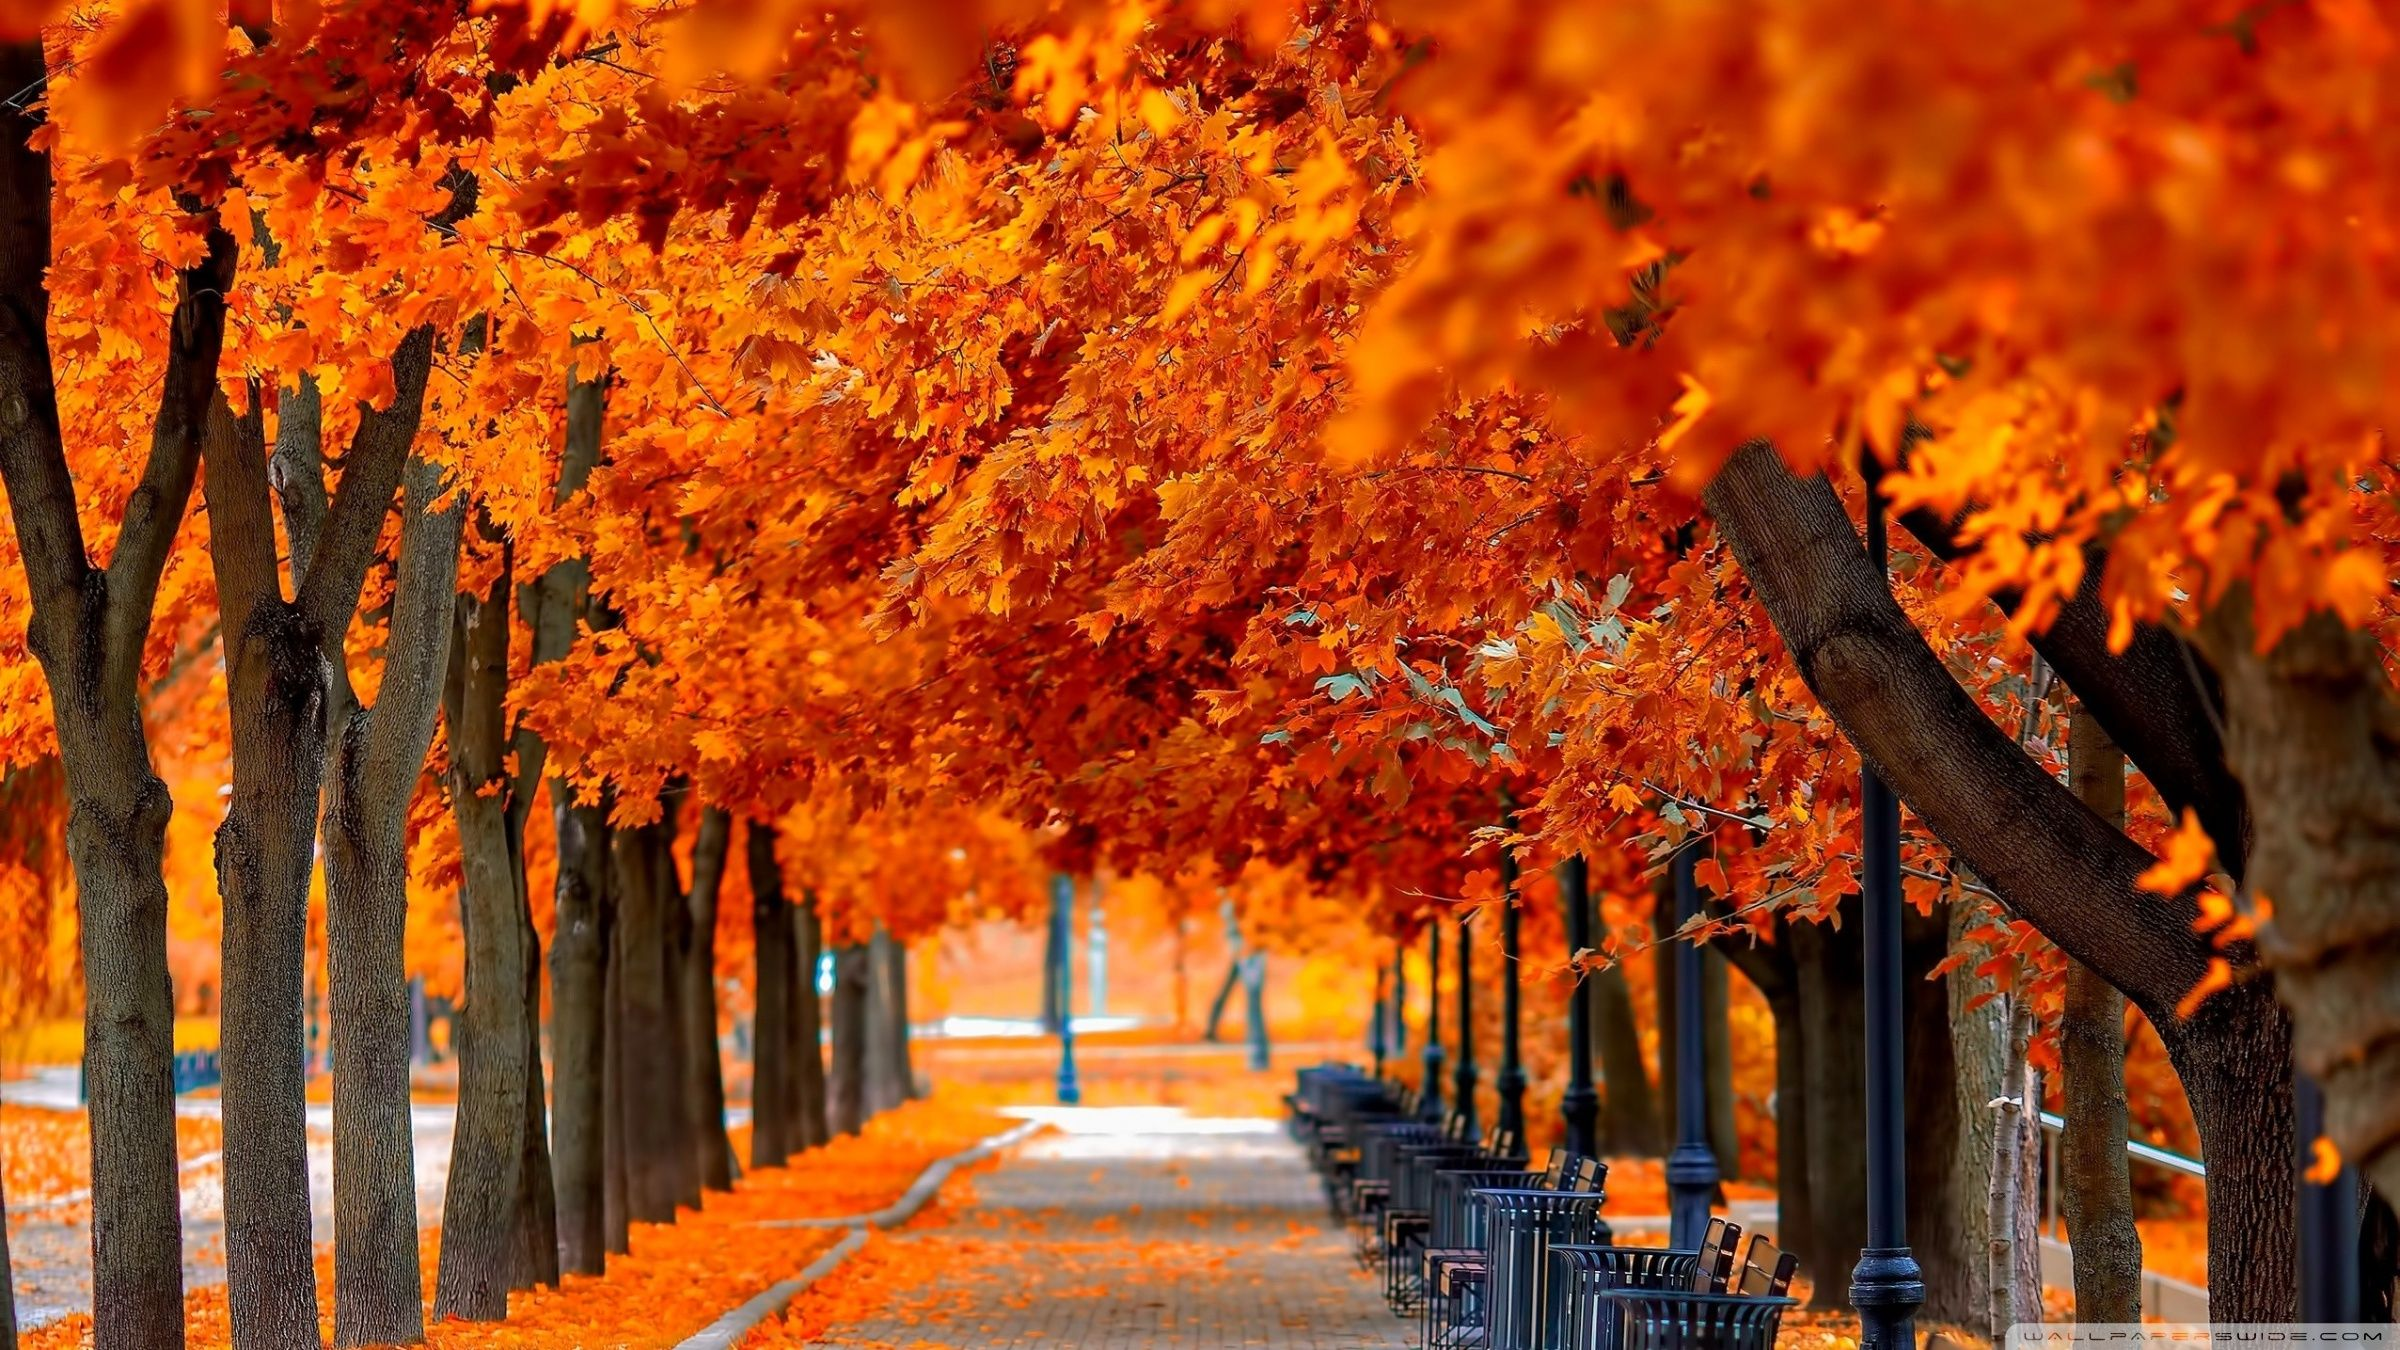 Fall In Love Wallpaper In Hd : Wallpaper Fall nice hd wallpapers with red and orange colors HD Wallpapers Pinterest Hd ...